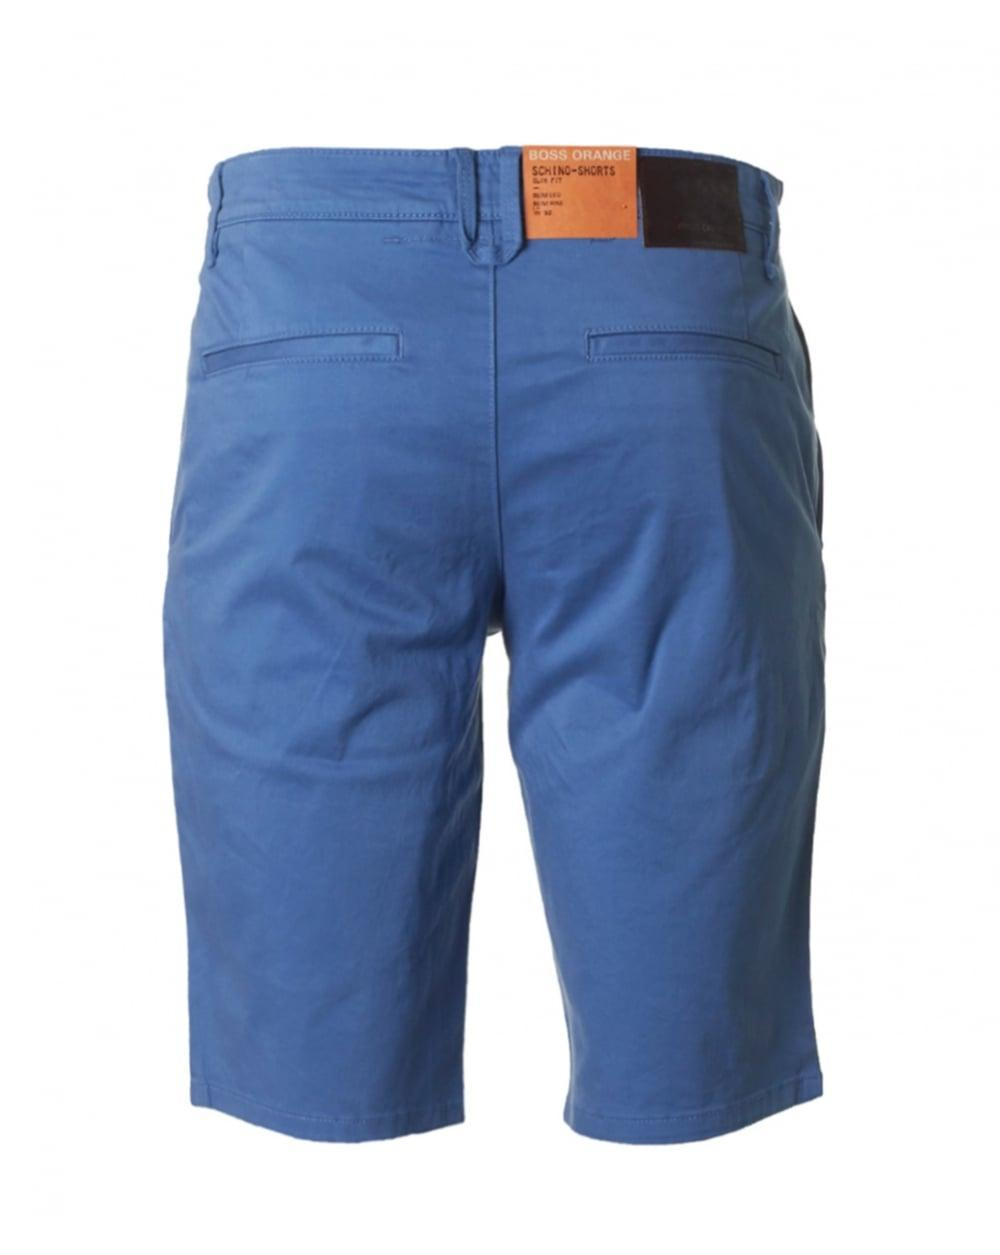 f7731576f Gallery. Previously sold at: Psyche · Men's Arc Teryx Stowe Men's Cut Off  Shorts ...